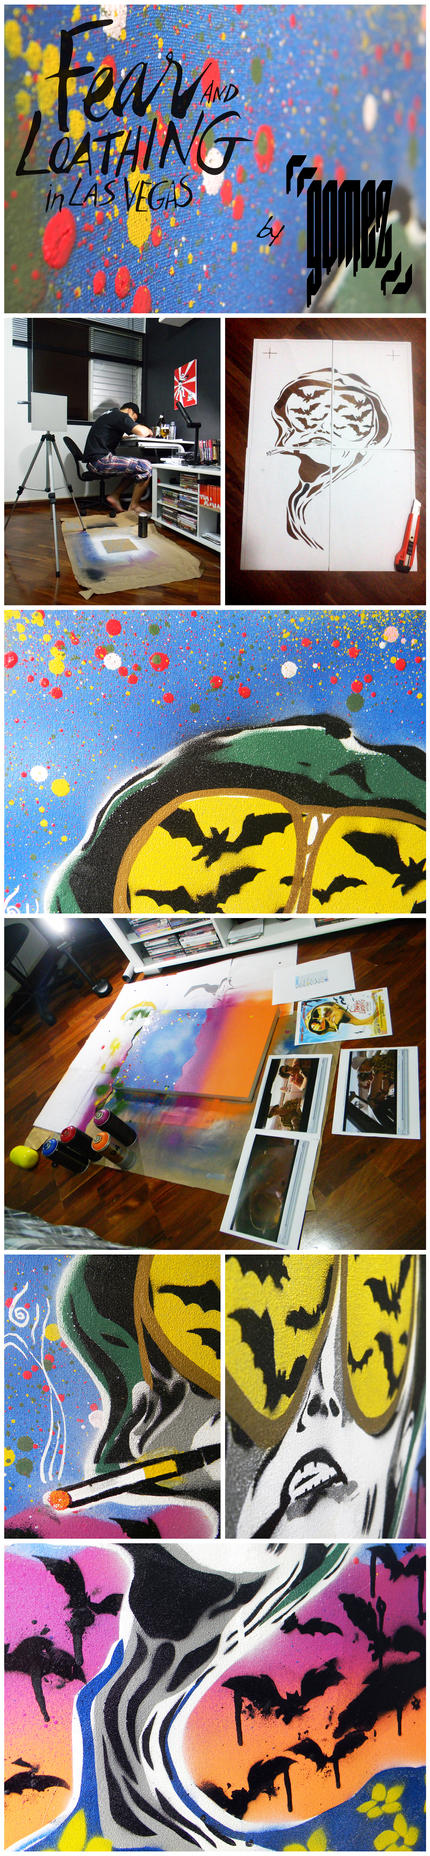 Fear and Loathing in Las Vegas Canvas - Process by byCavalera